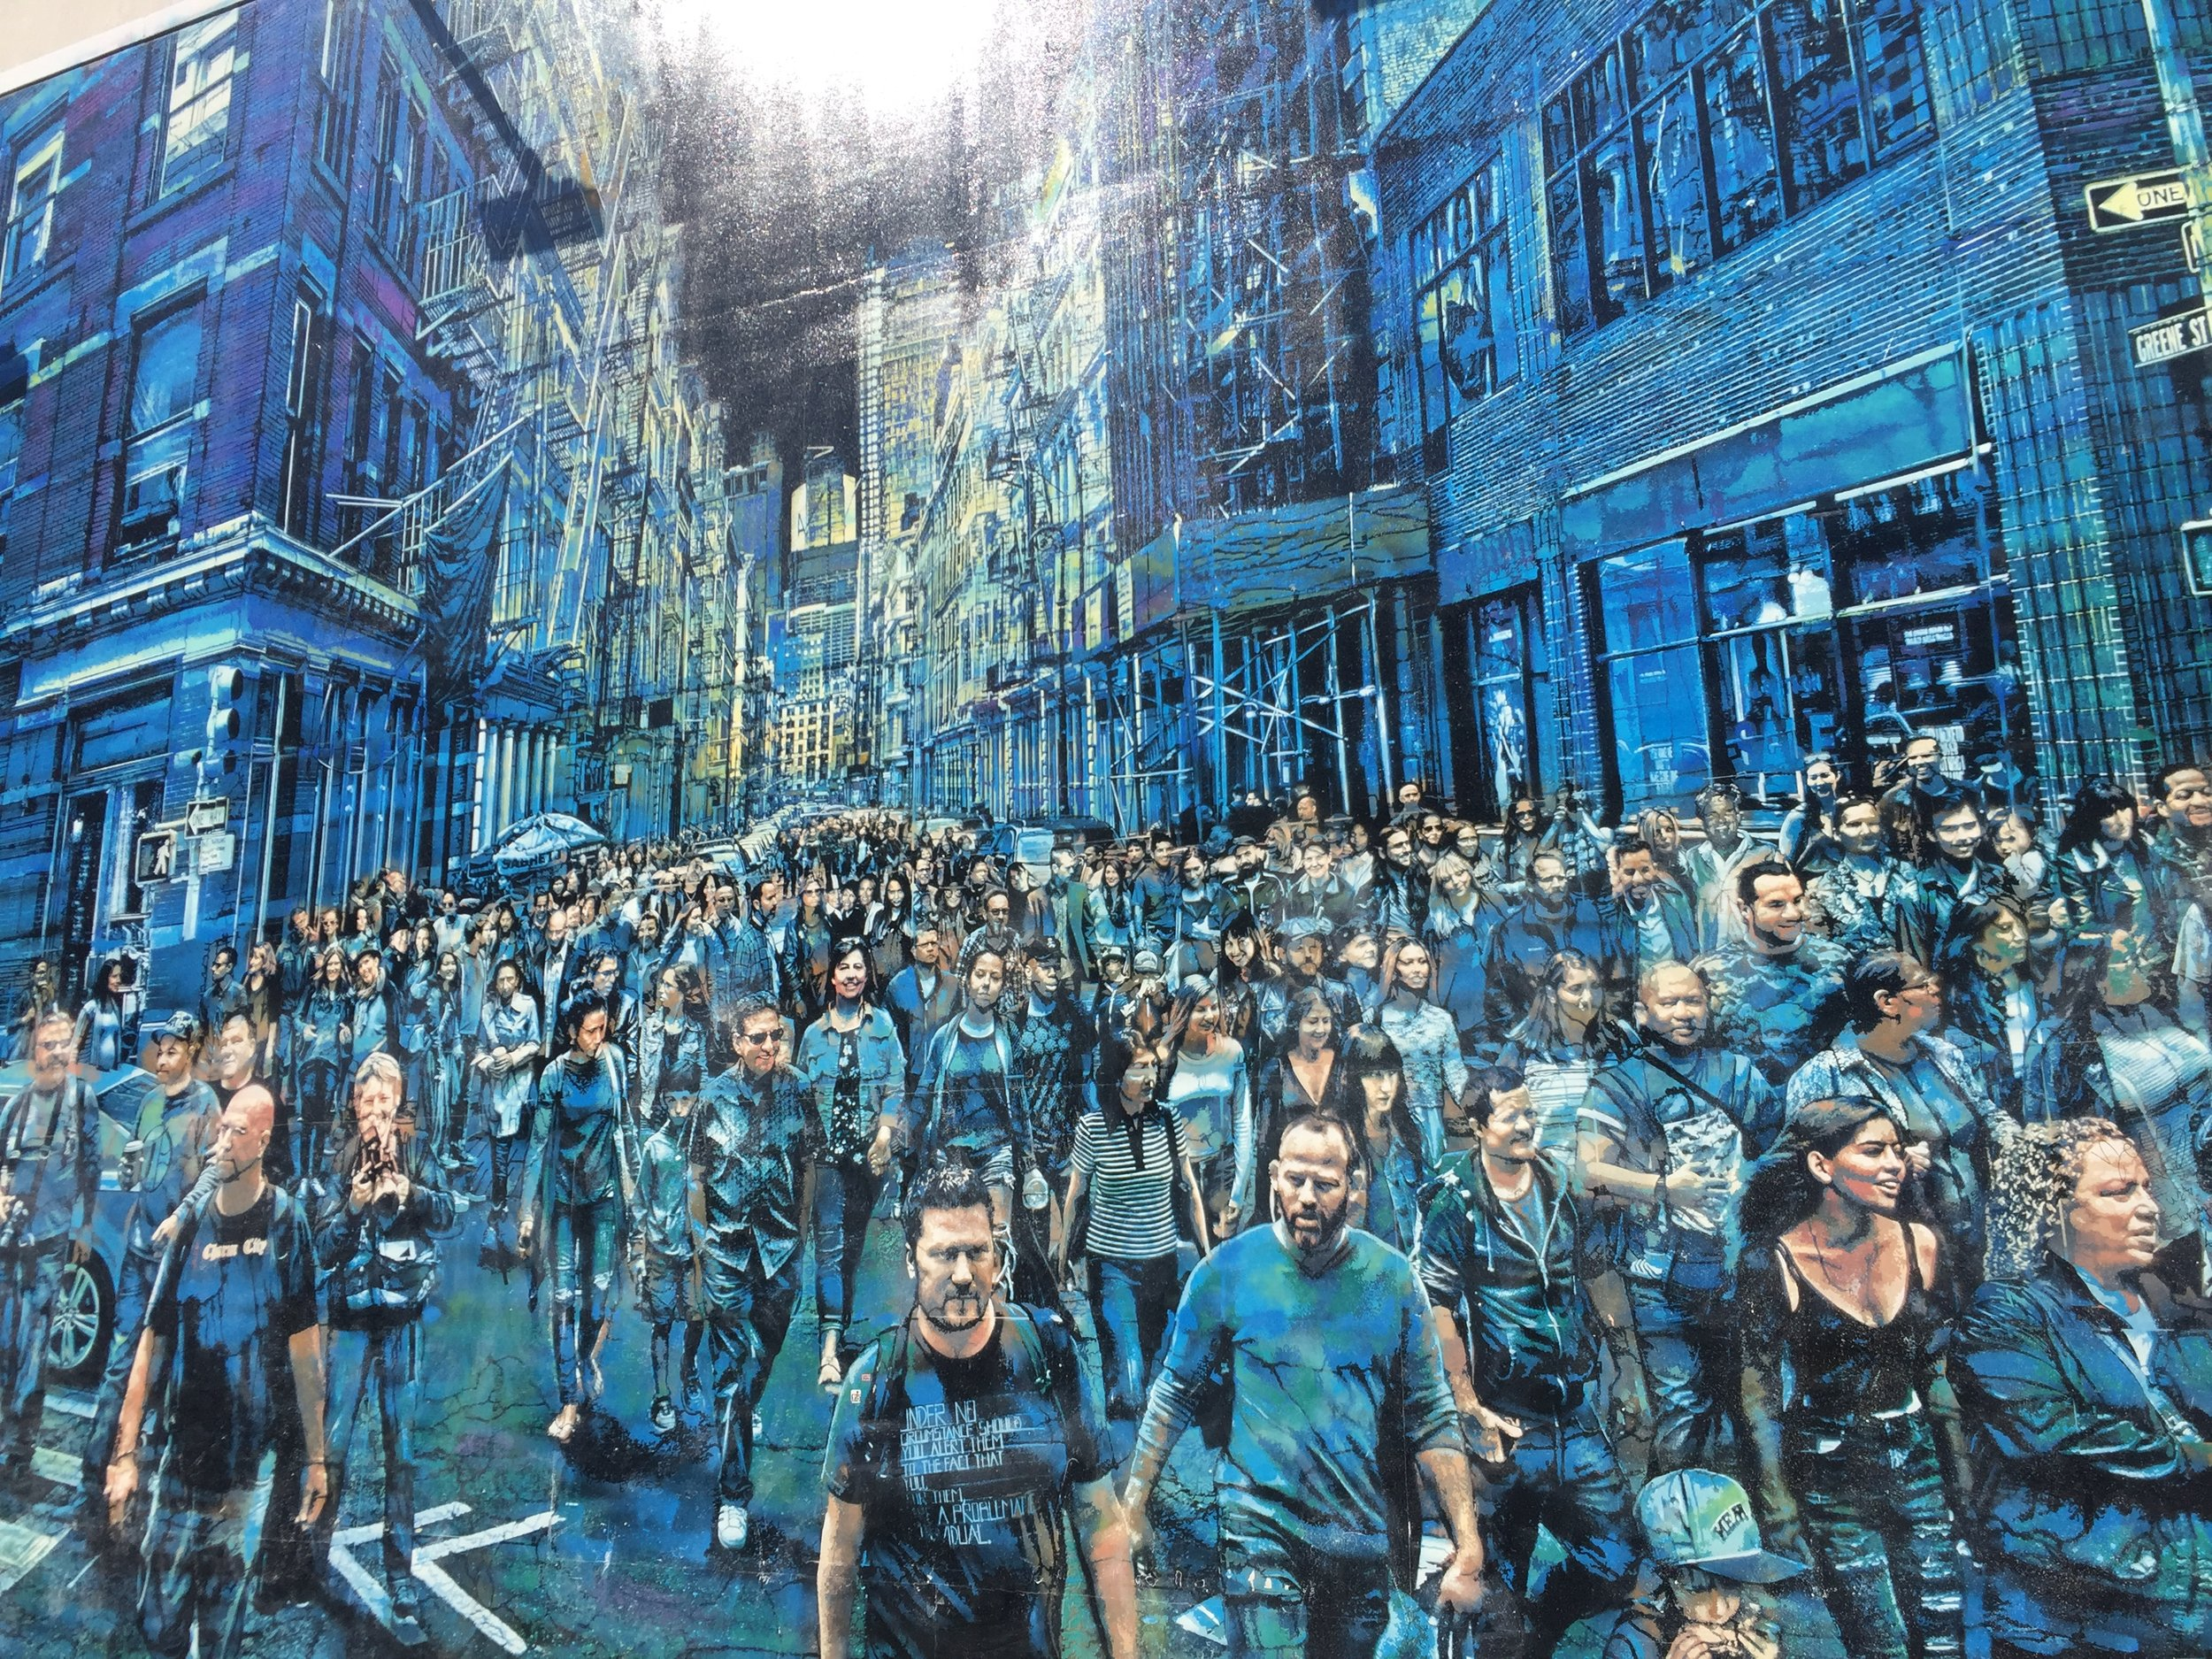 The amazing, life-like crowd scene on Bowery captures characters from the artist Logan Hicks' 10 years in NYC.